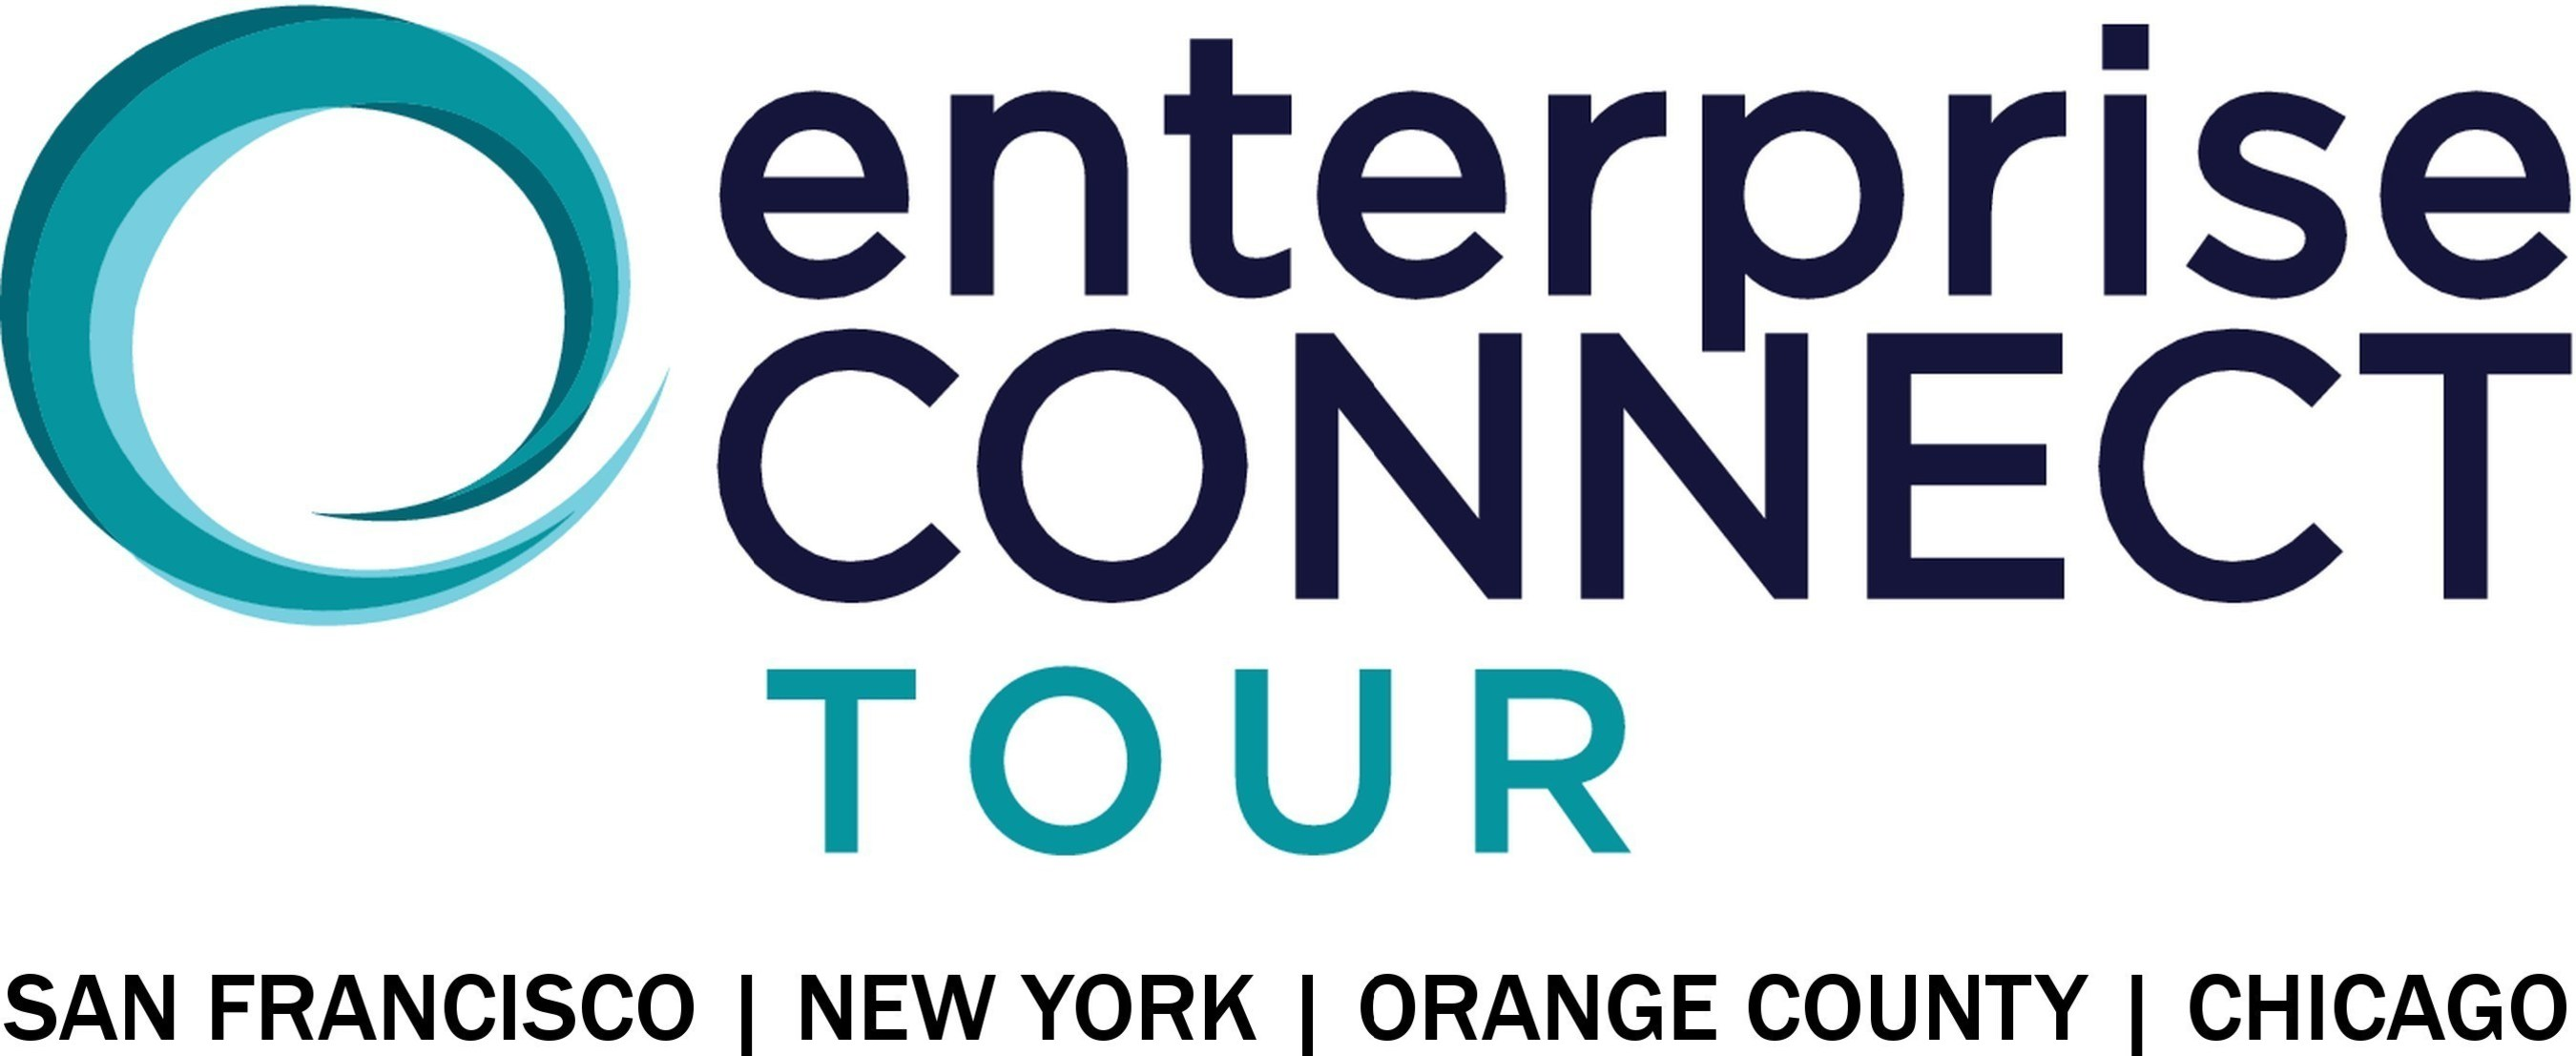 Enterprise Connect Tour 2015: Implementing Microsoft Lync/Skype for Business in Your Enterprise     August & September 2015